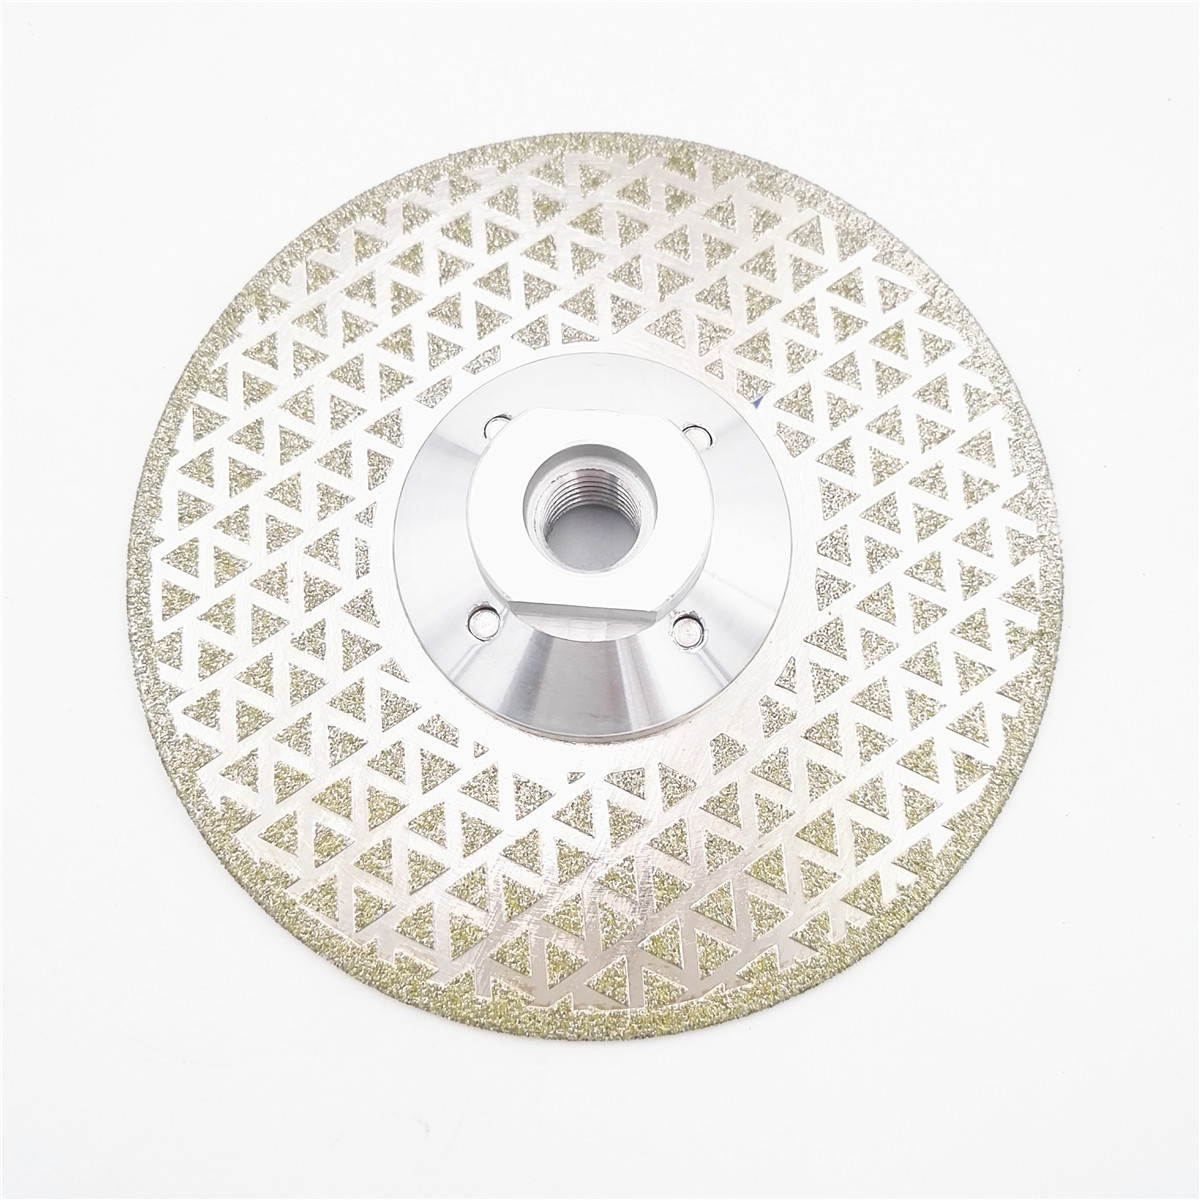 цена на DIATOOL 125mm Electroplated Diamond Cutting And Grinding Disc For Granite & Marble With Double Grinding Sides